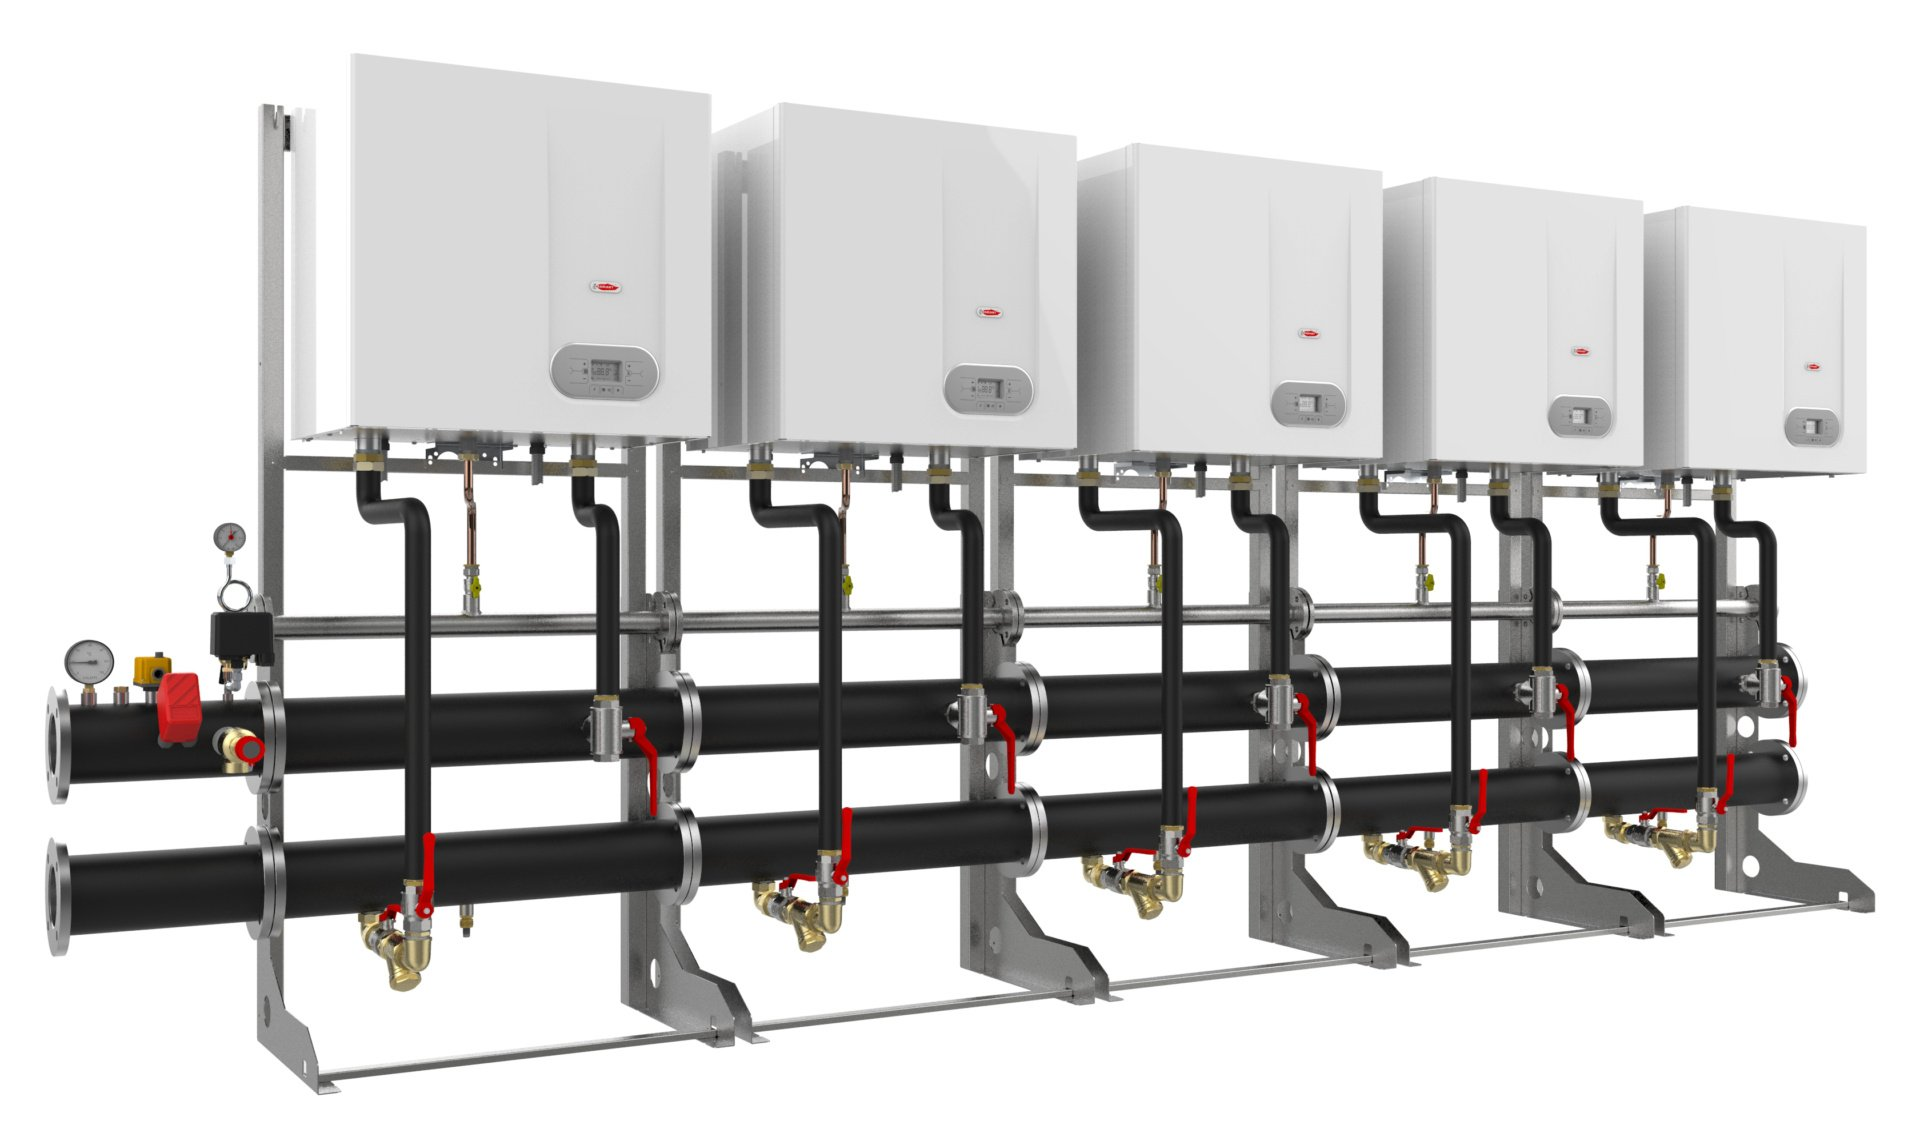 commercial and industrial gas boiler; commercial boiler in a cascade;commercial boiler installations